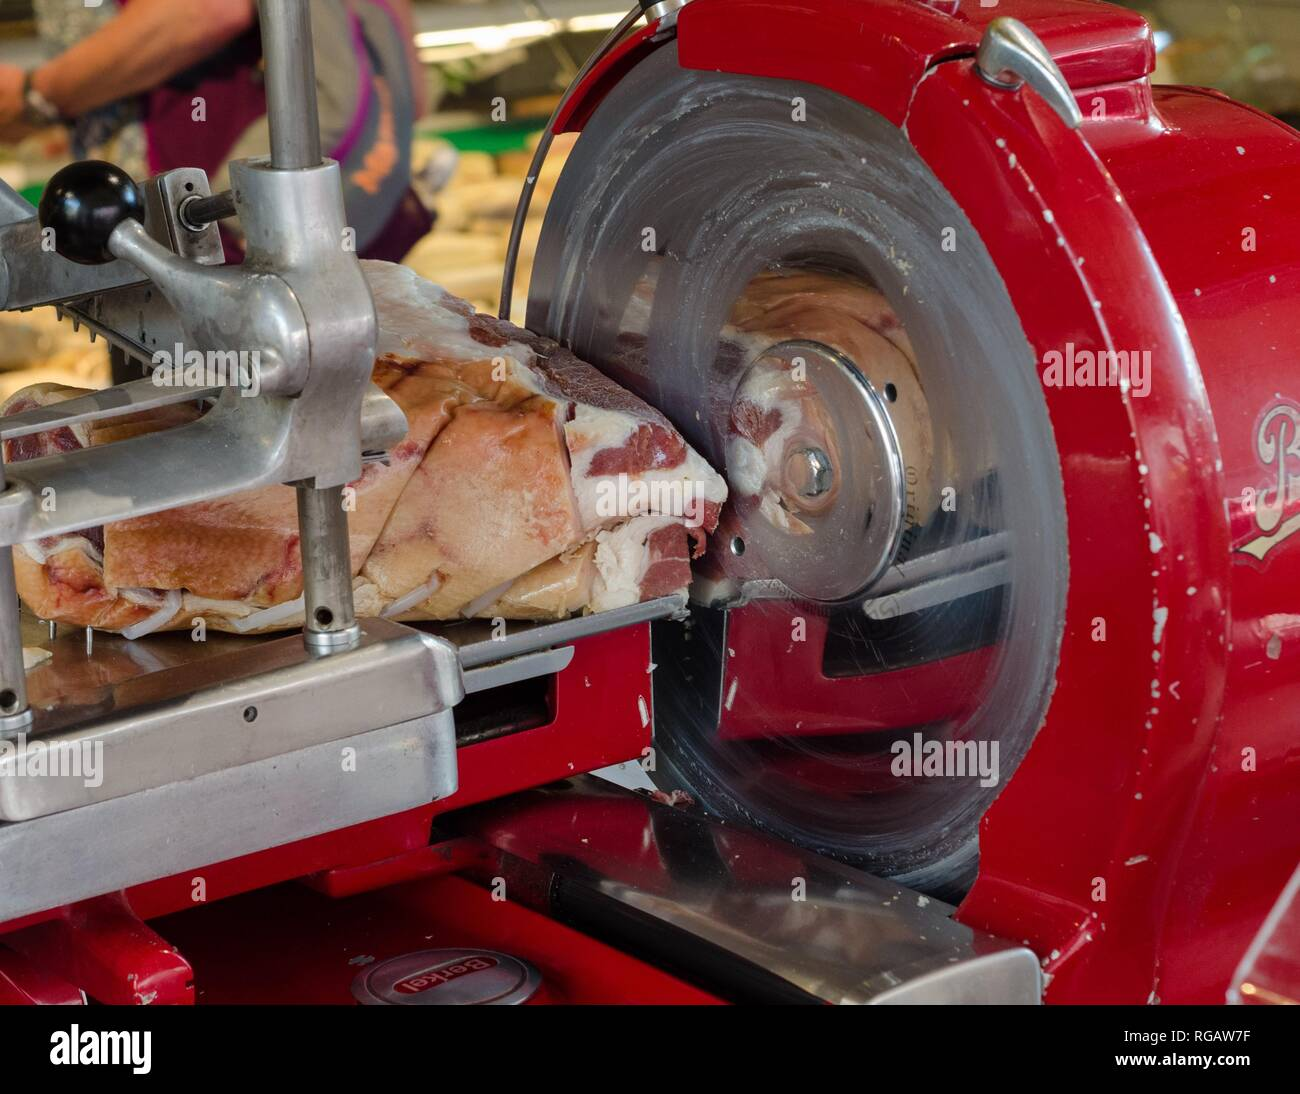 Meat Slicer Stock Photos & Meat Slicer Stock Images - Alamy